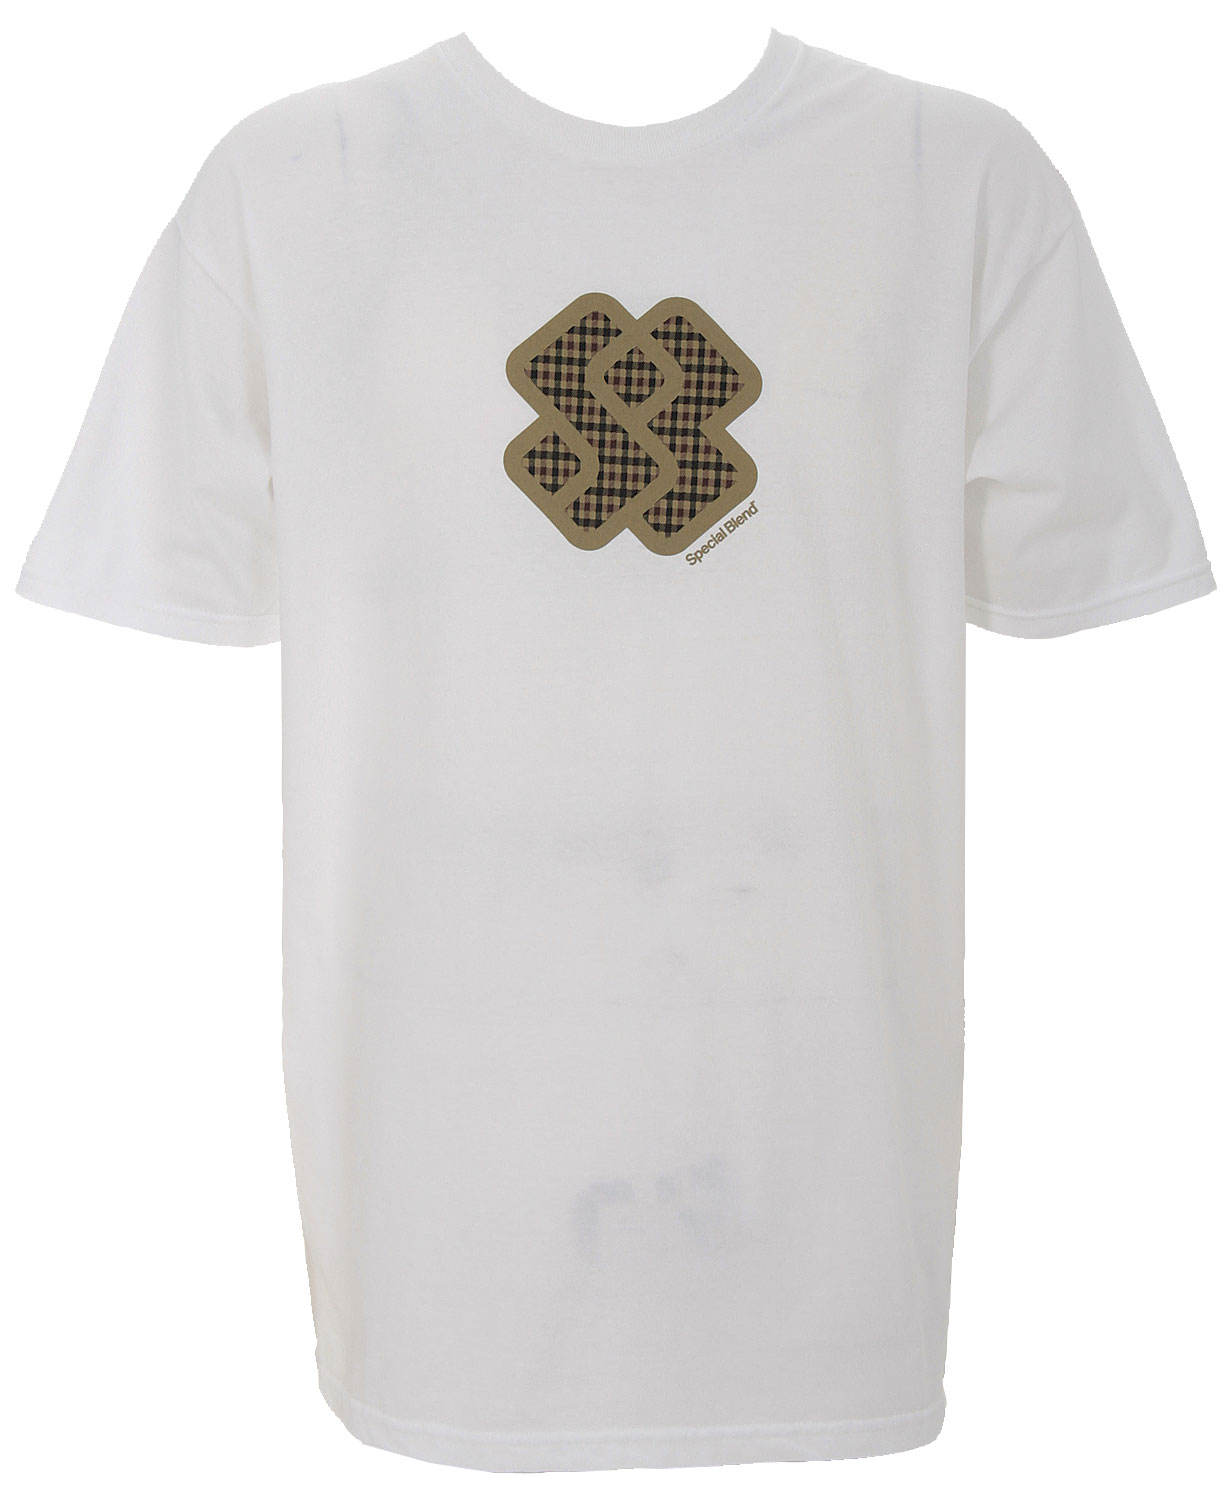 Special Blend Shepards Weave T-Shirt - $10.75